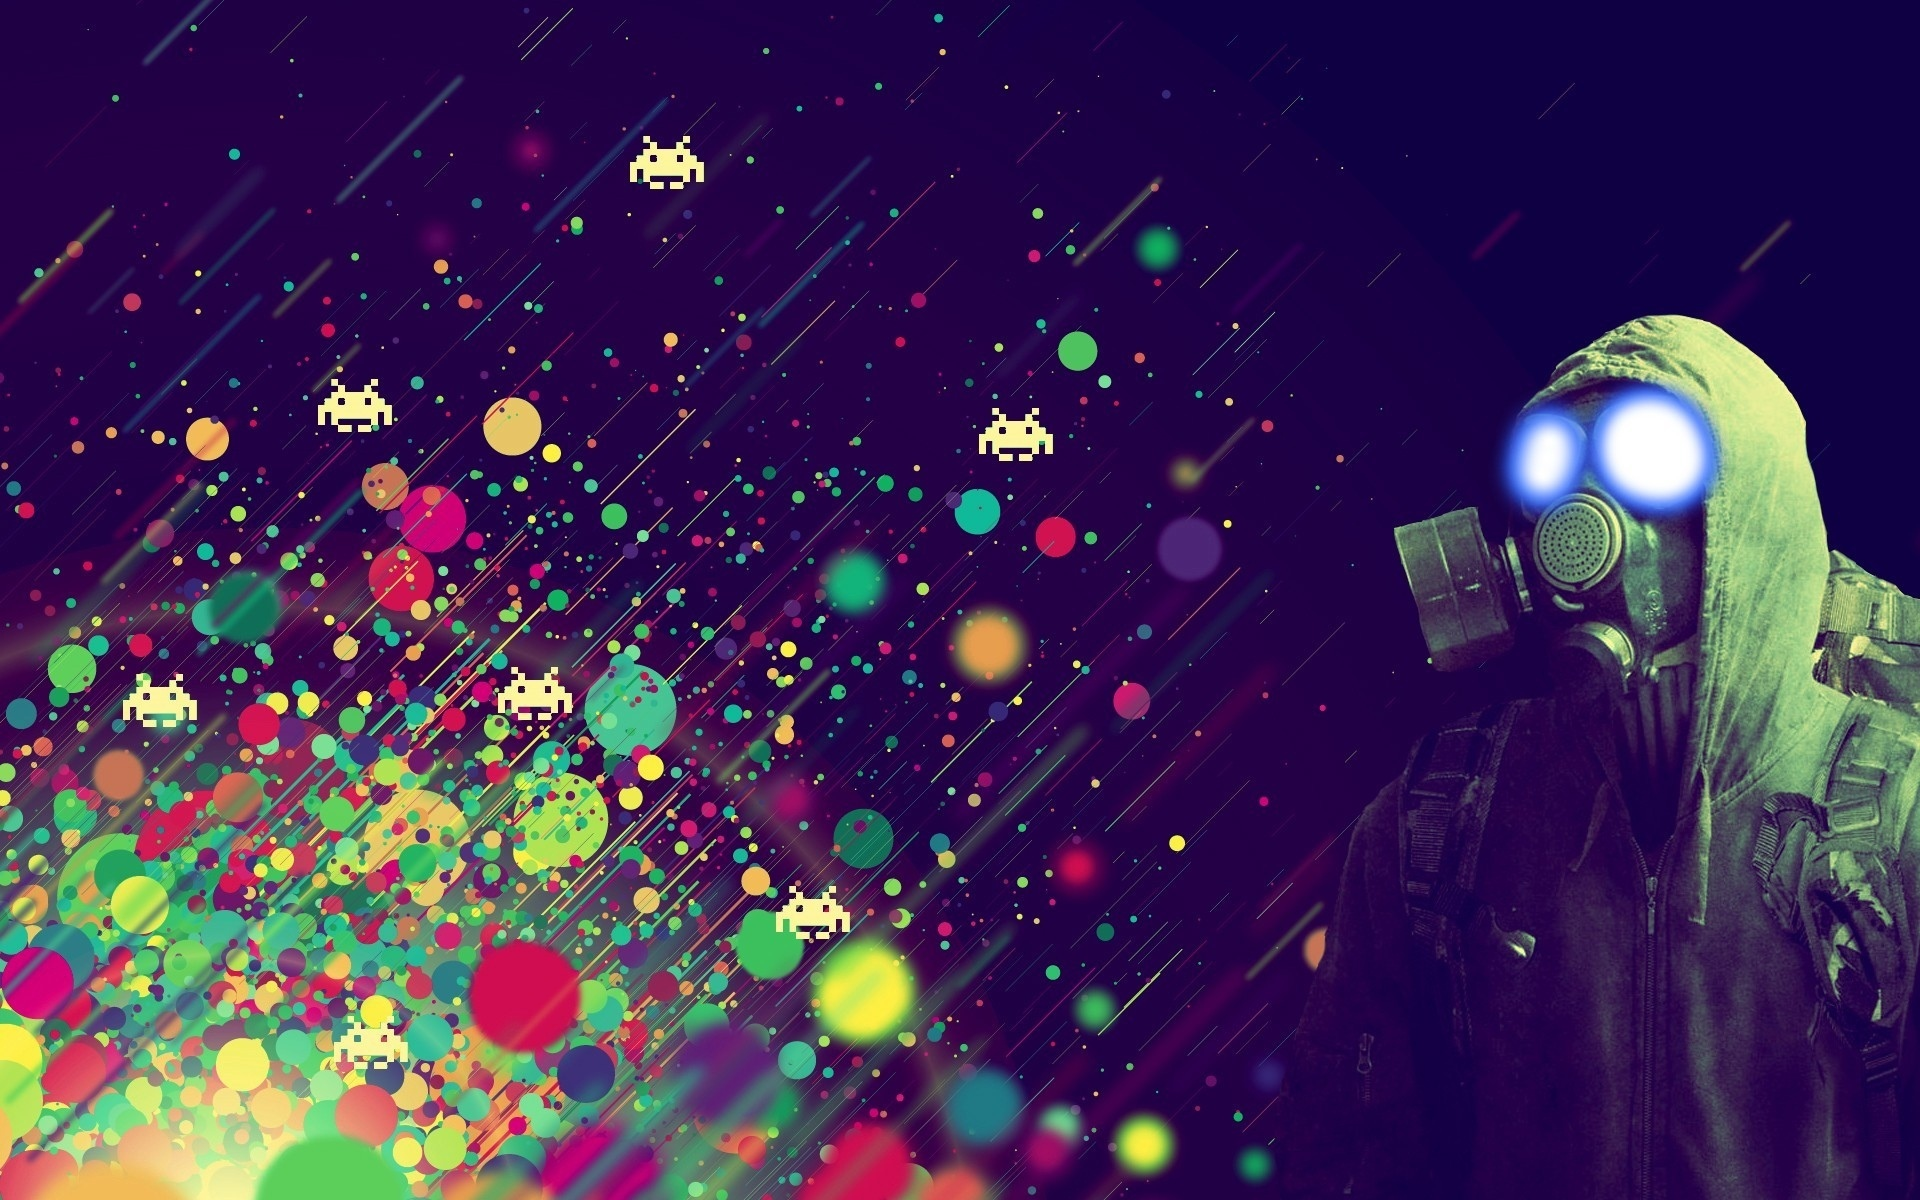 spots mask Abstract colors people space invaders games dark abstract